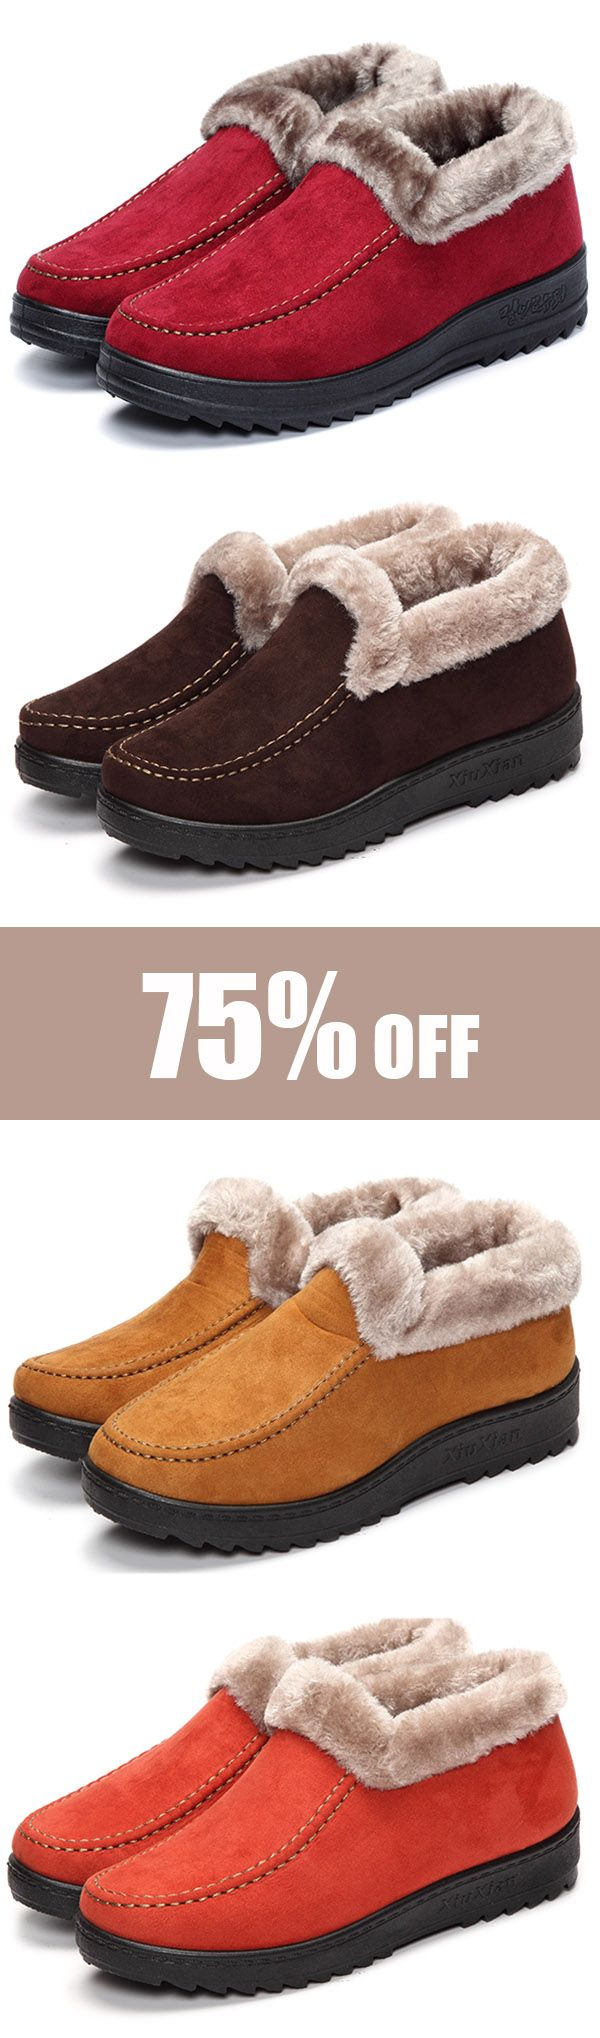 Suede Wool Lining Slip On Ankle Short Snow Boots. Comfortable and warm boots in winter. #shoes #style #fashion